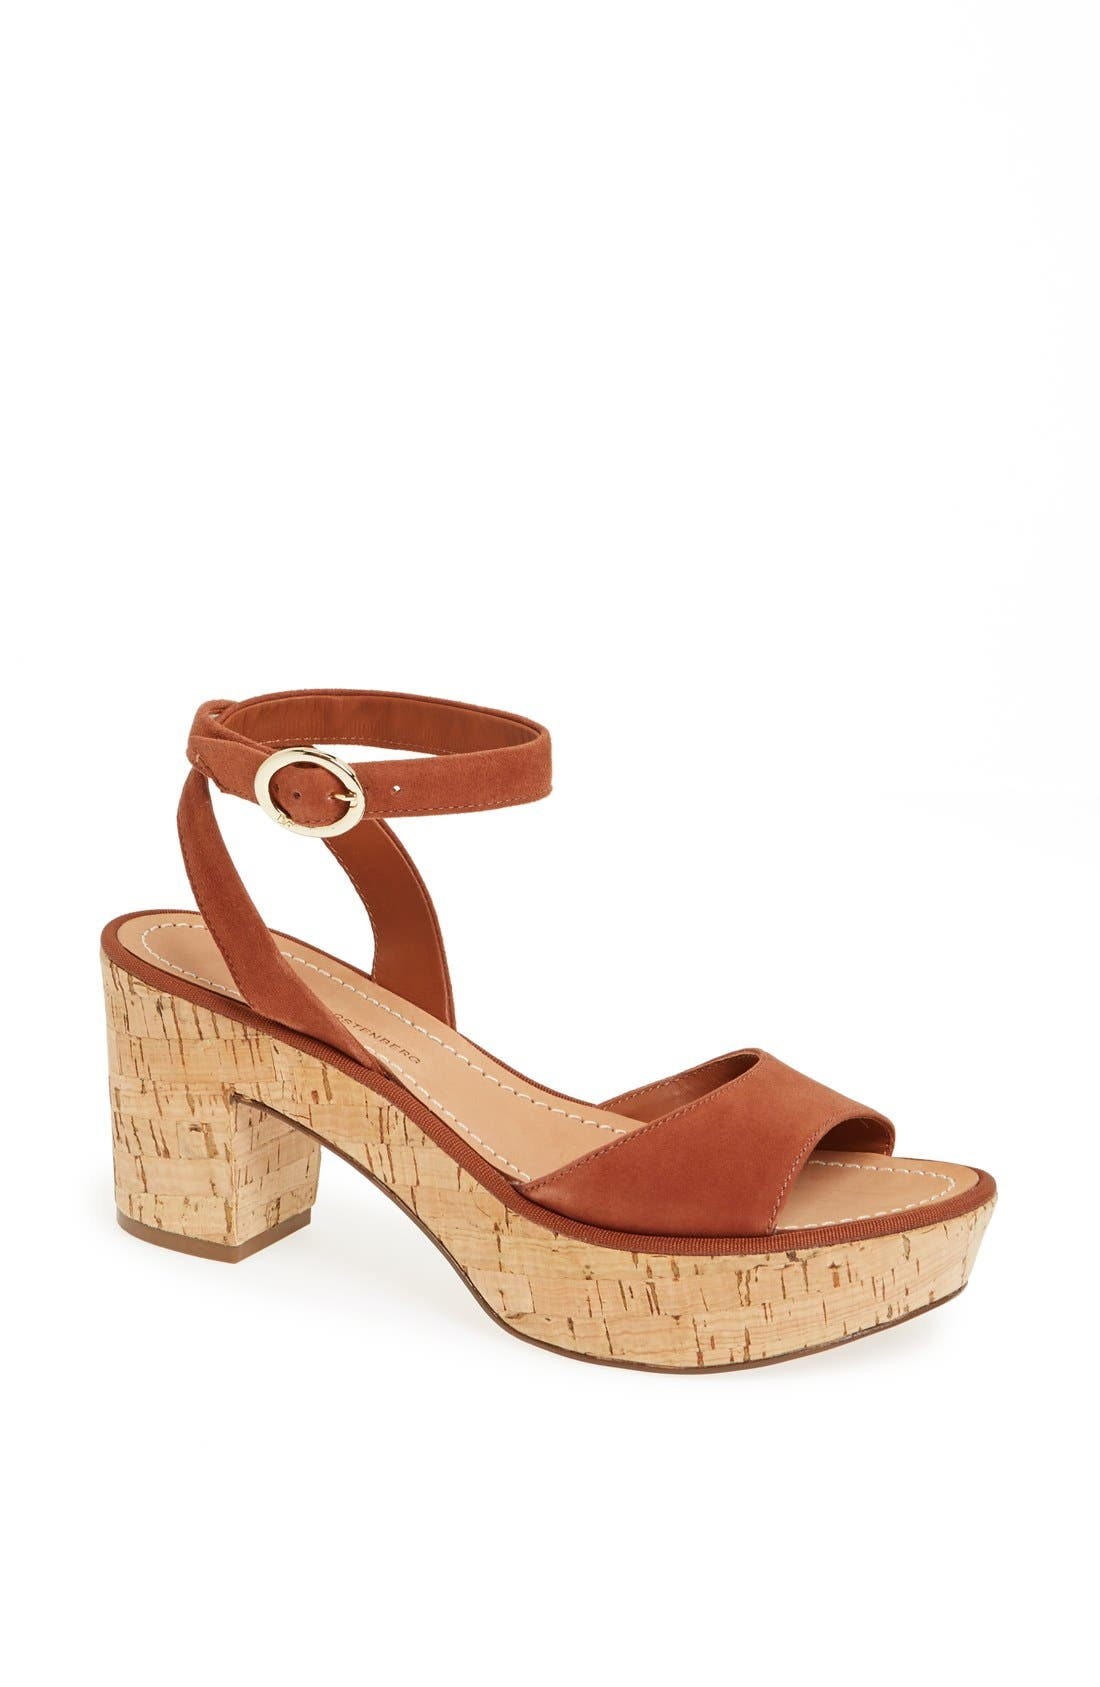 Alternate Image 1 Selected - Diane von Furstenberg 'Odelia' Sandal (Online Only)